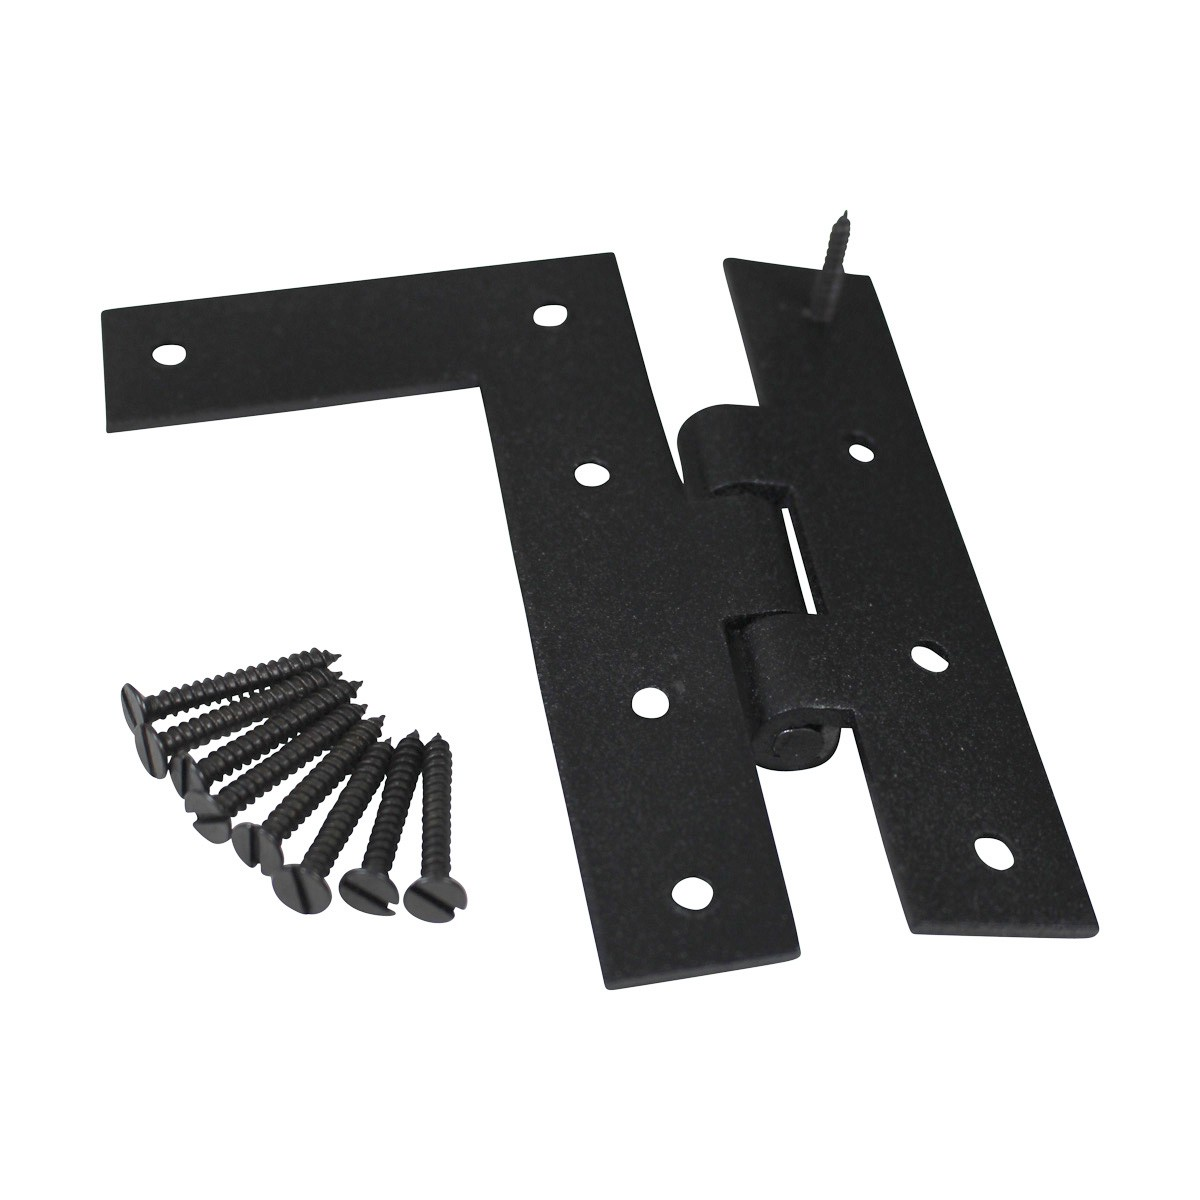 Cabinet Hinges Wrought Iron Black Flush Right Only 4.5H Wrought Iron Door Hinges Black Door Hinges Rustproof Cabinet Hinges